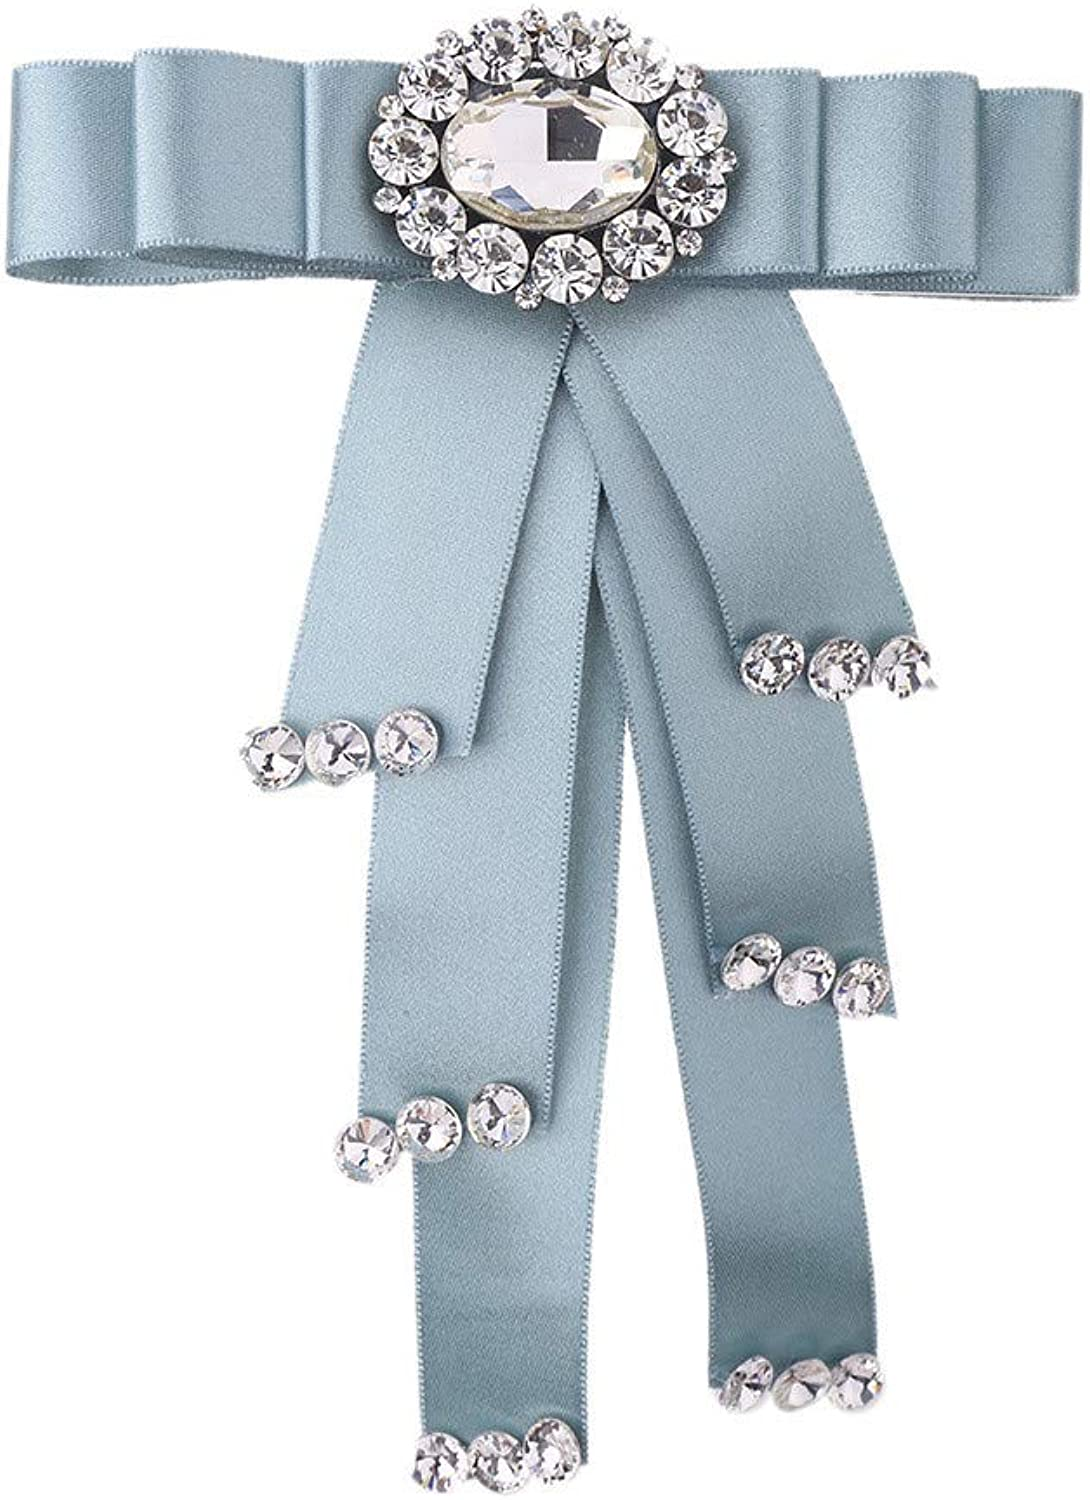 Women's Tie Crystal Rhinestone Bowknot Brooch Neck Bow Tie Collar Flower Pins Corsage (color   blueee)